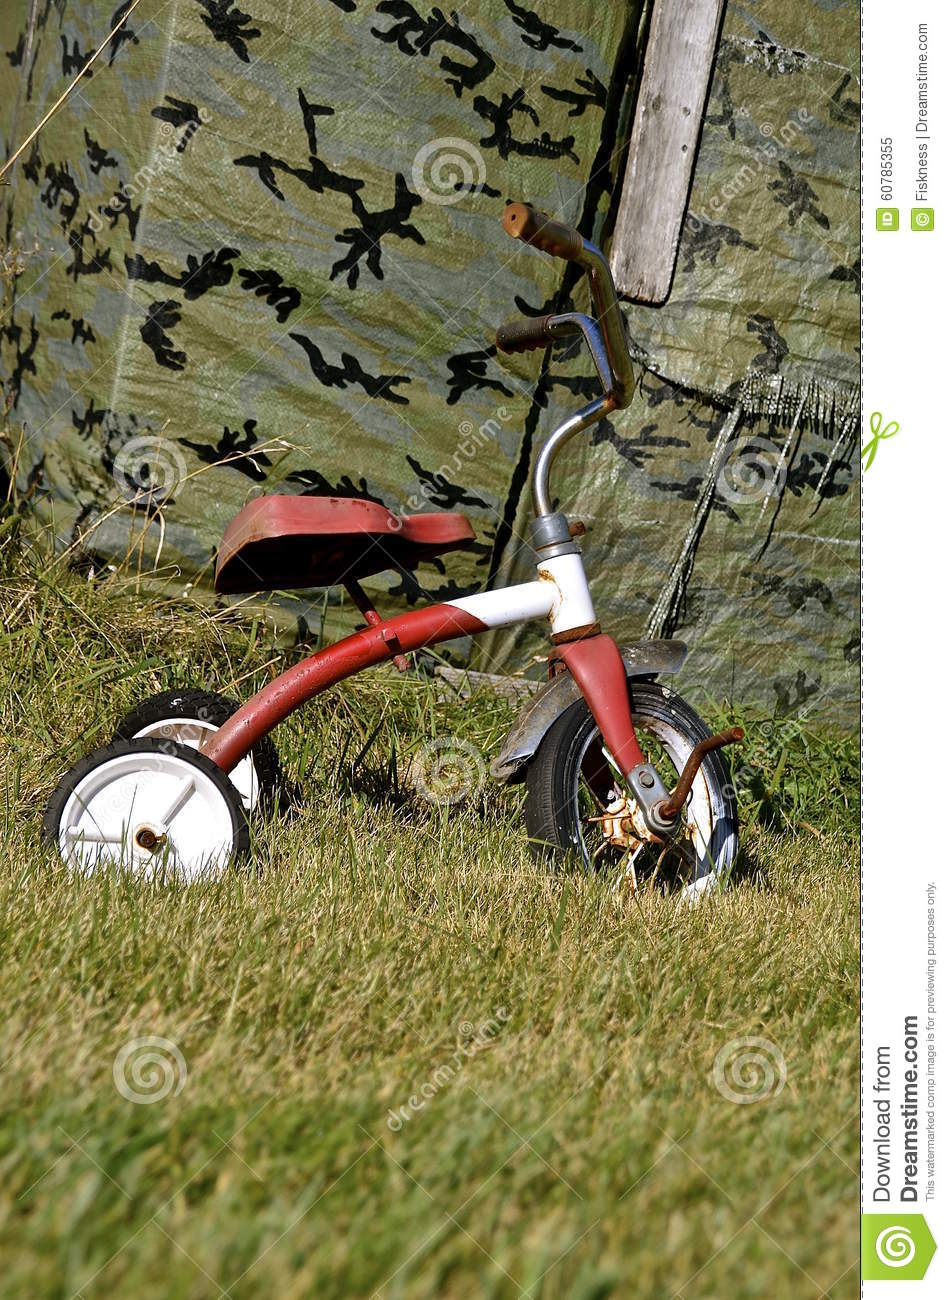 327 Vintage Trike Photos Free Royalty Free Stock Photos From Dreamstime